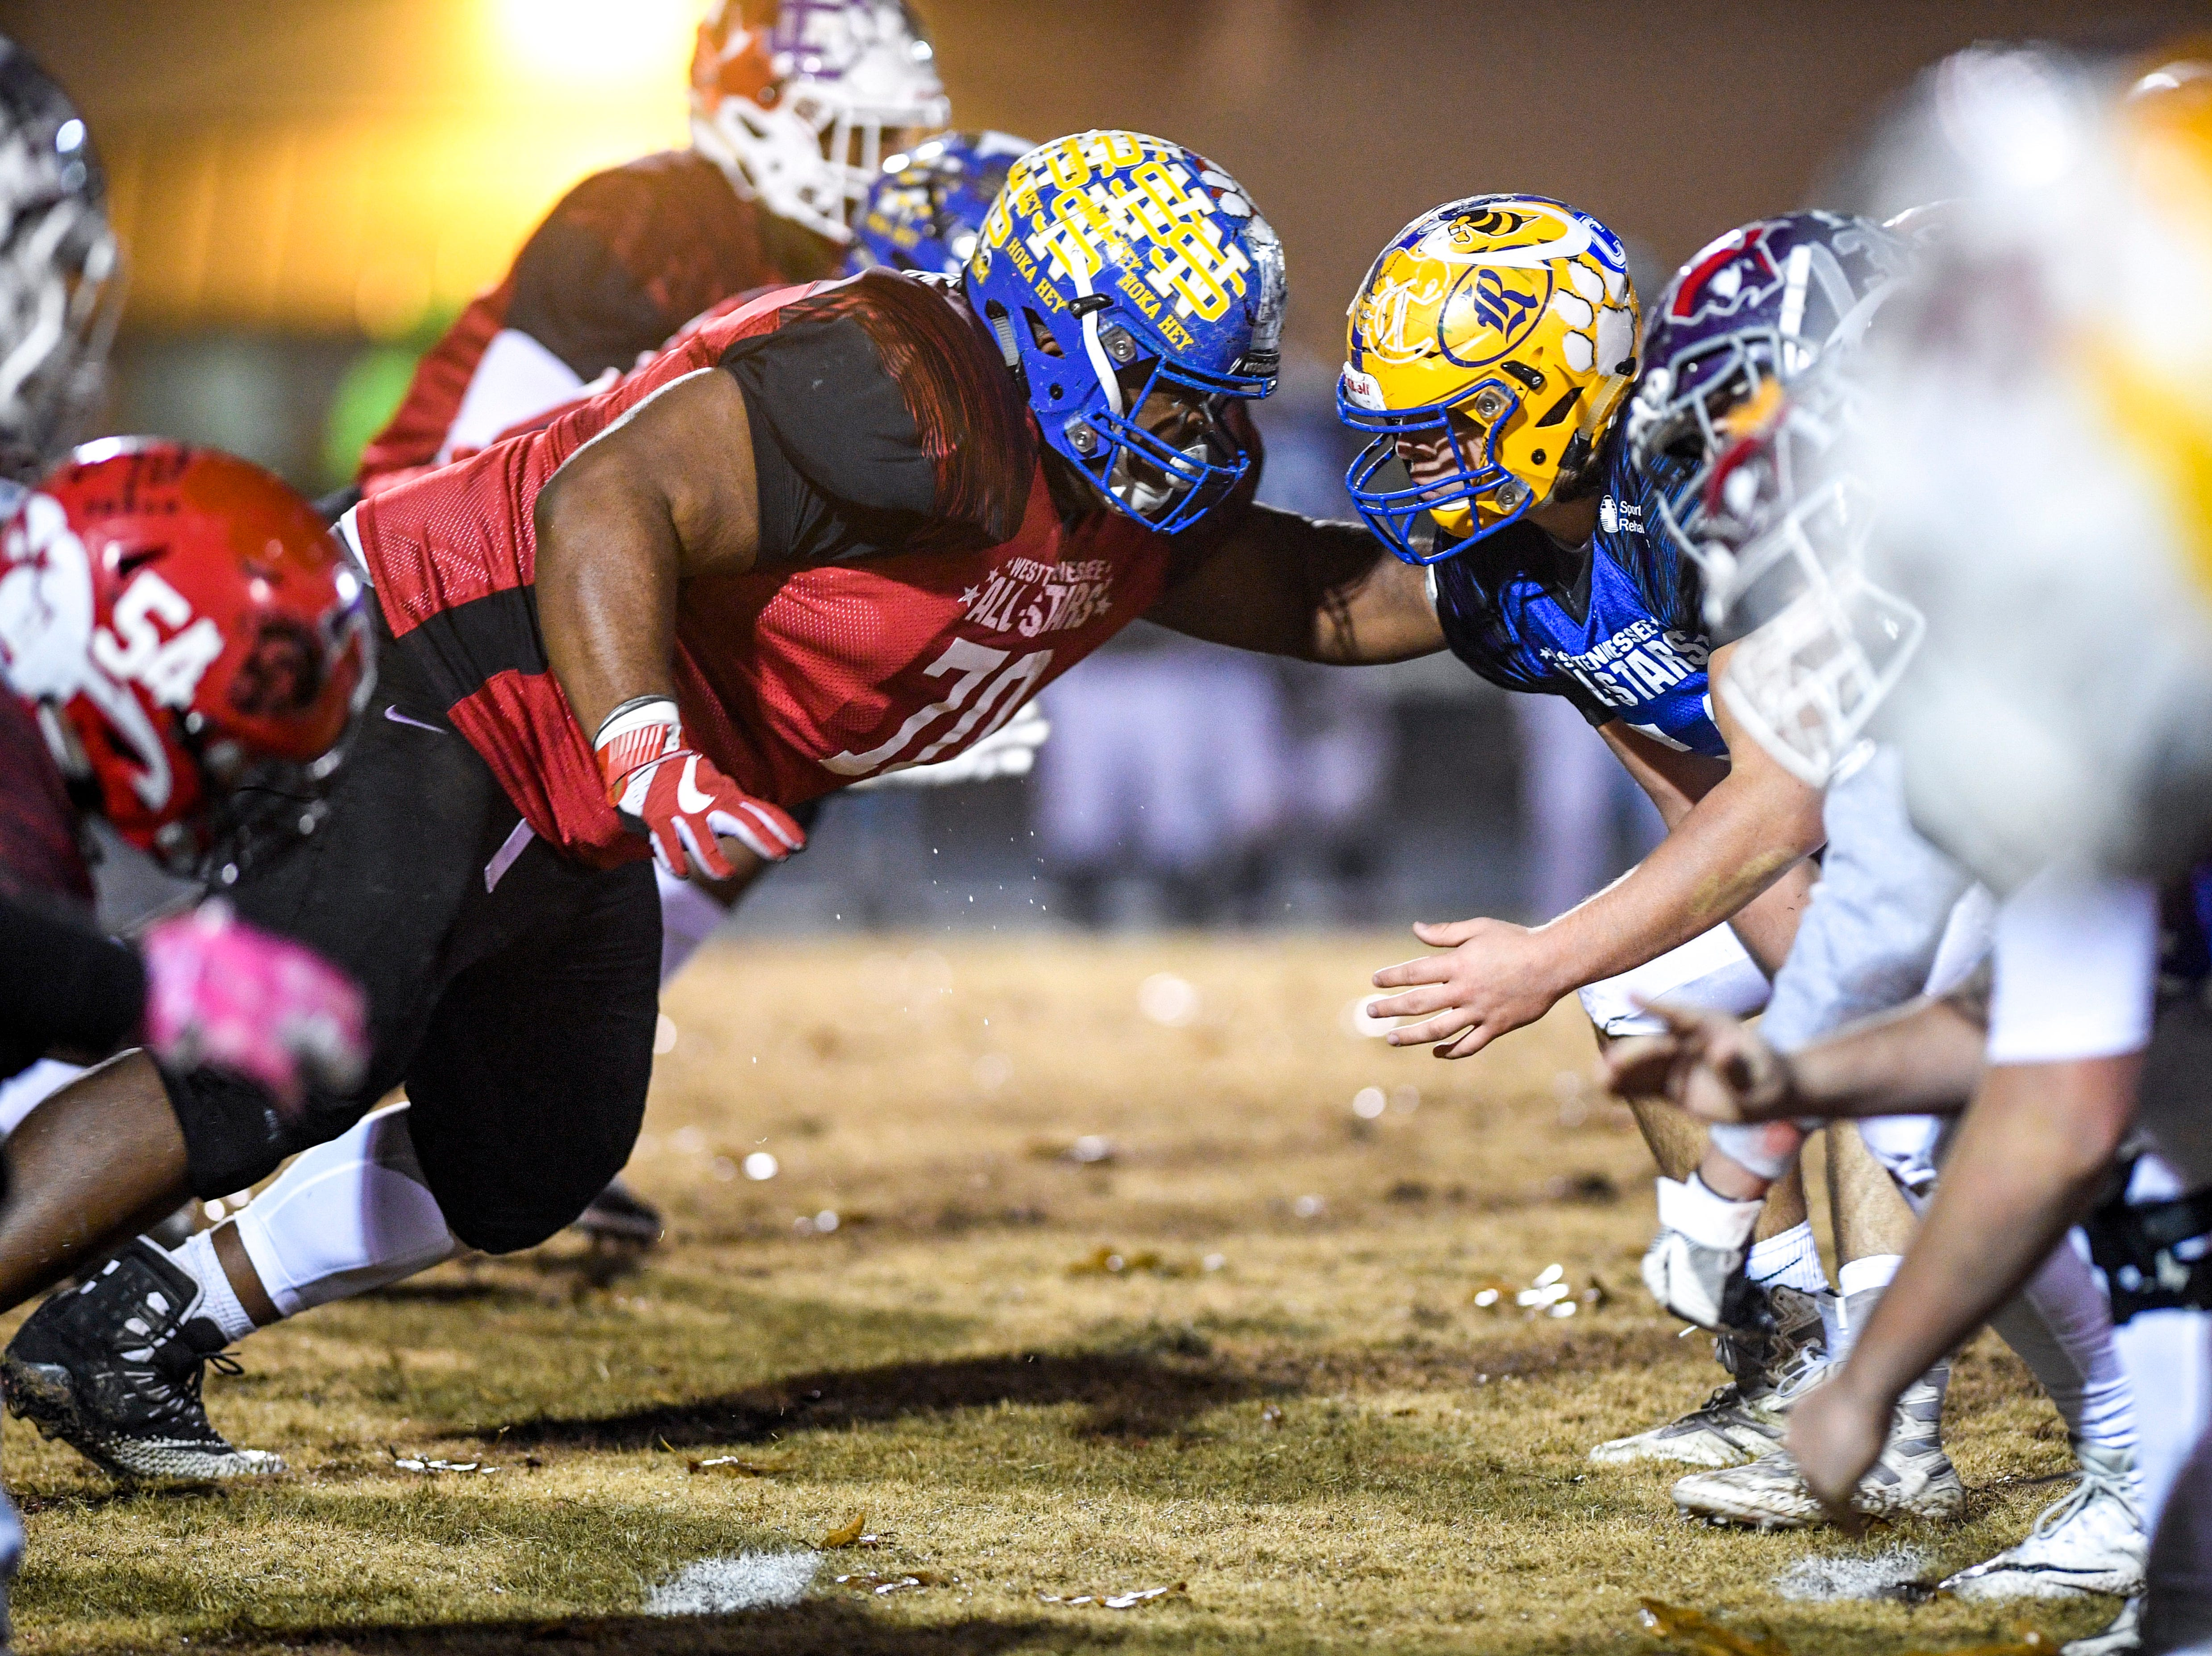 West Tennessee's best football players impact one another at the start of a play during the West Tennessee All-Star football game at University School of Jackson in Jackson, Tenn., on Friday, Dec. 7, 2018.